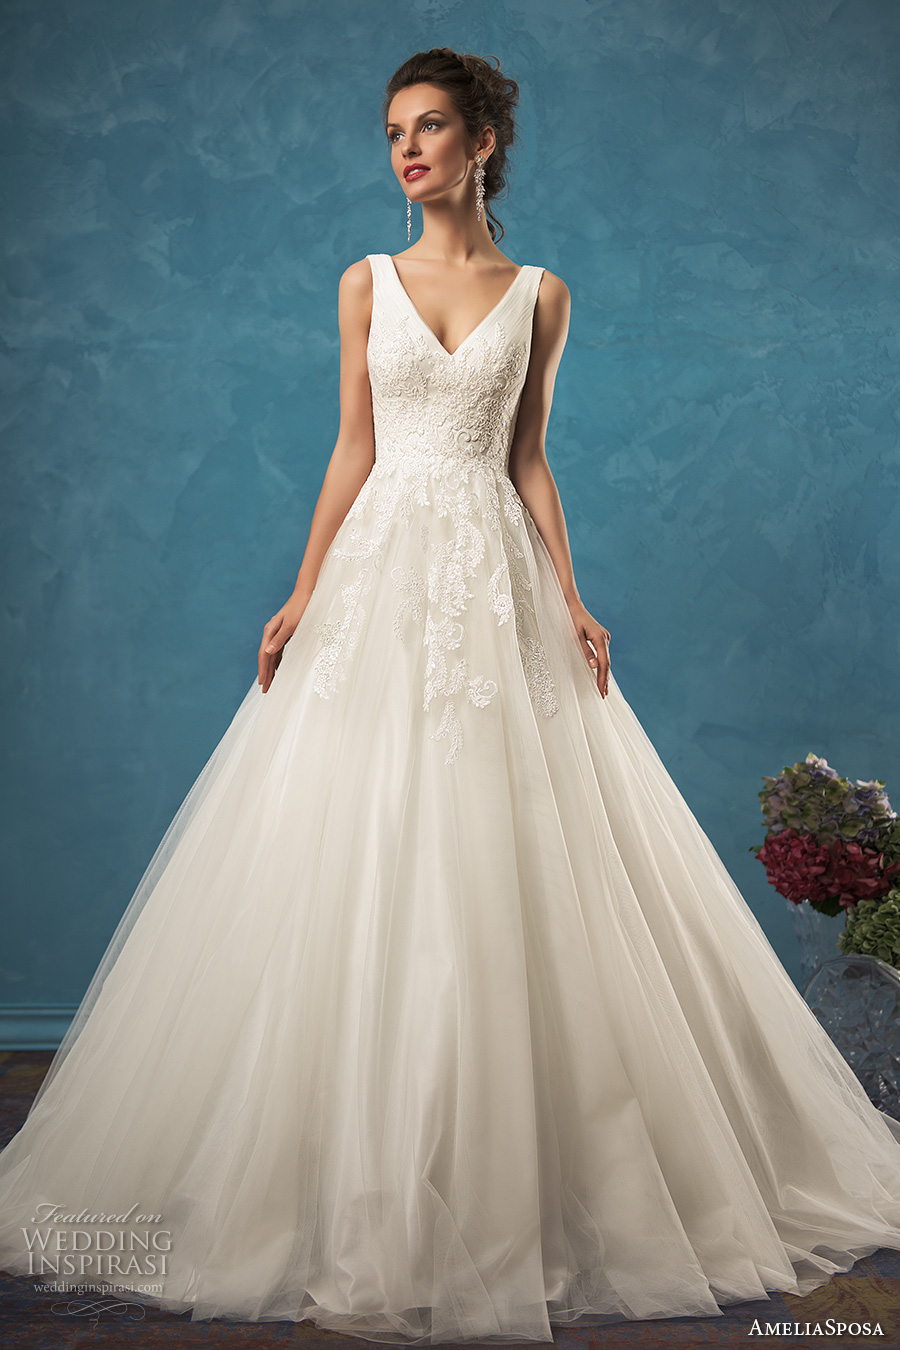 v neck wedding dress amelia sposa 2017 wedding dresses wedding inspirasi 8220